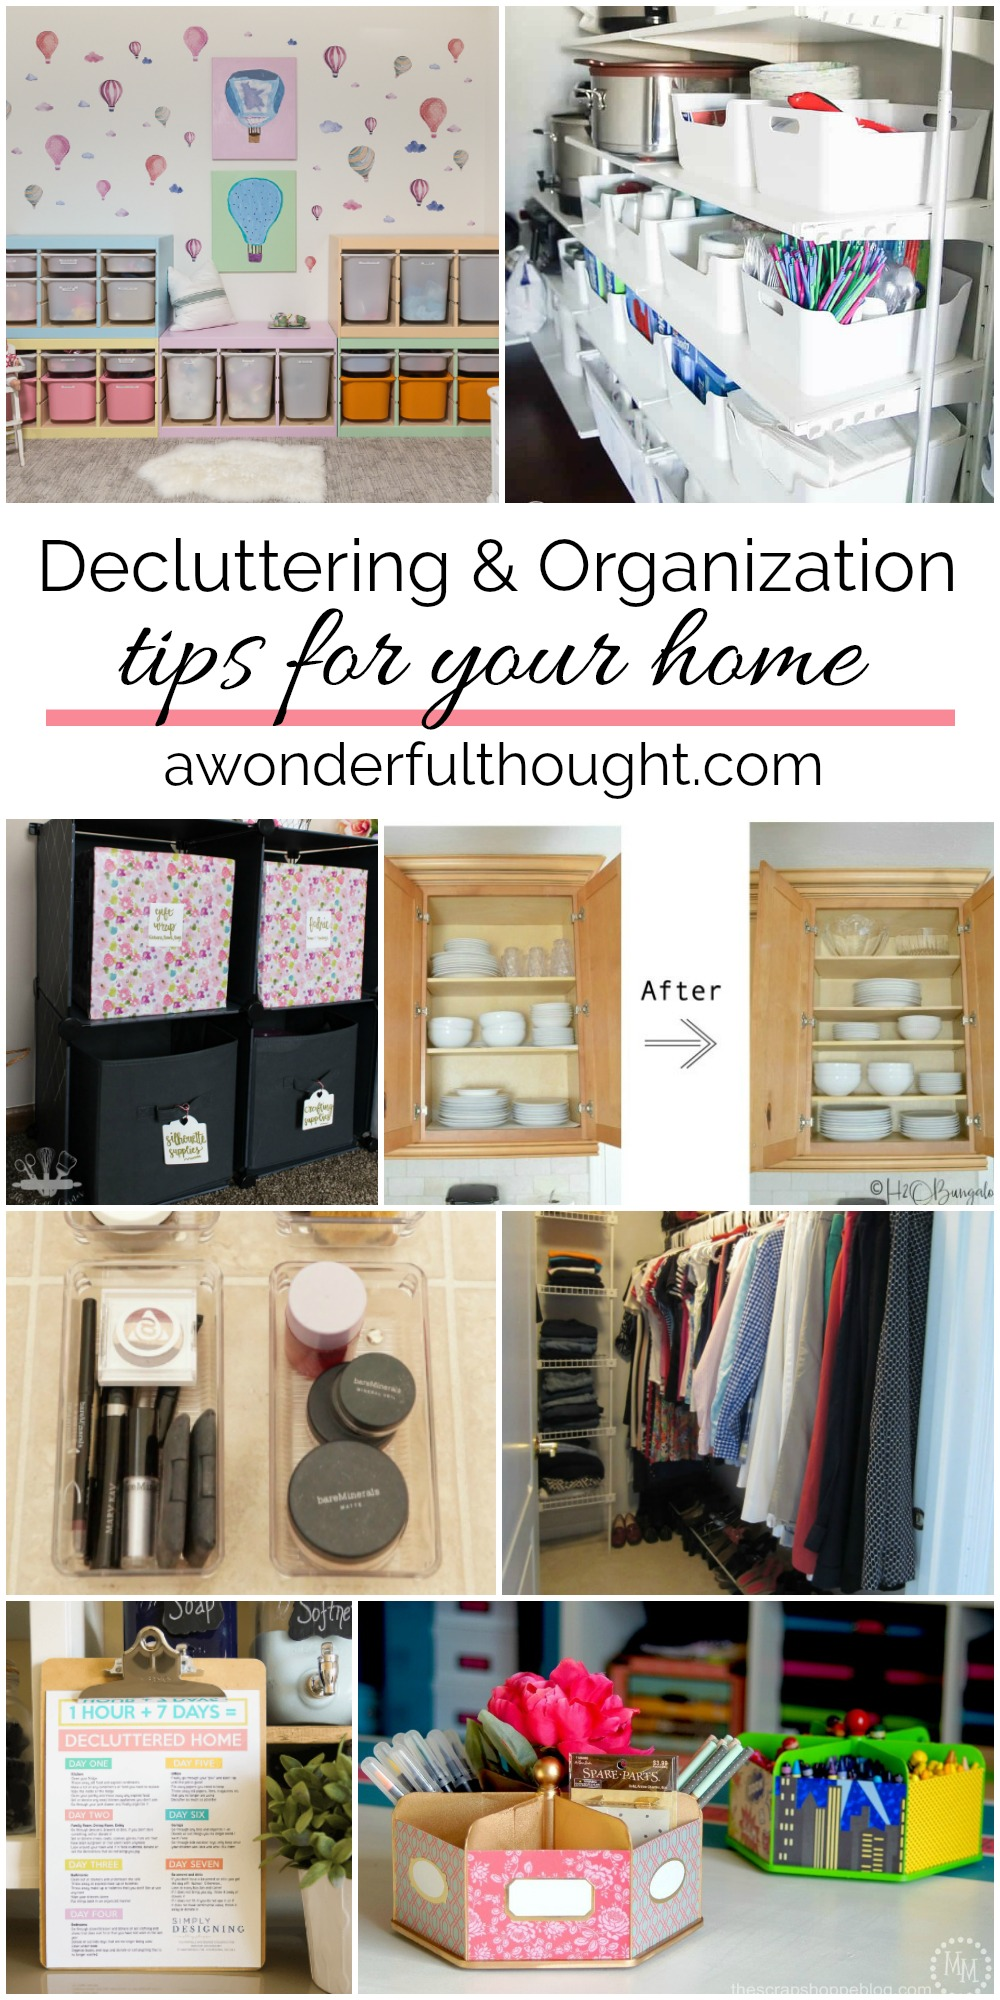 Home Organization Decluttering And Organizing Tips For Your Home A Wonderful Thought